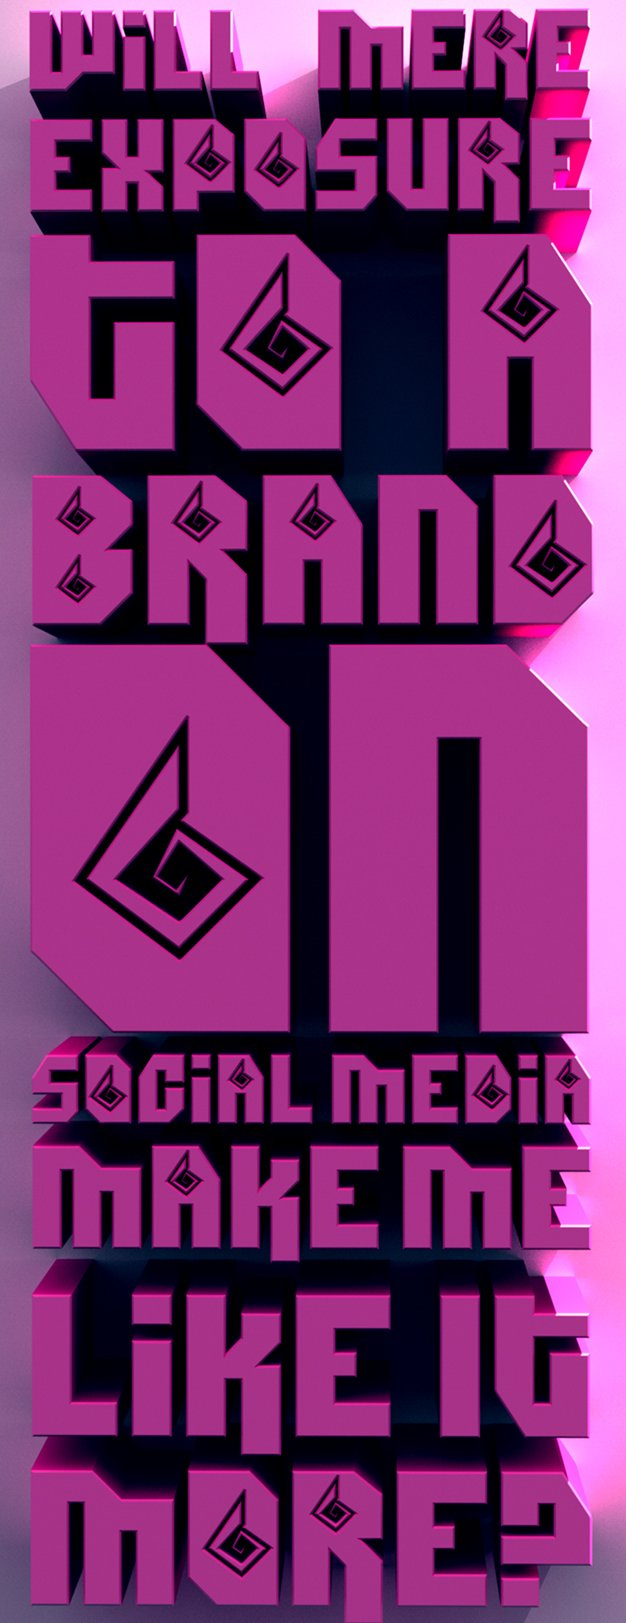 Will Mere Exposure to a Brand on Social Media Make Me Like It More - ImagiBrand